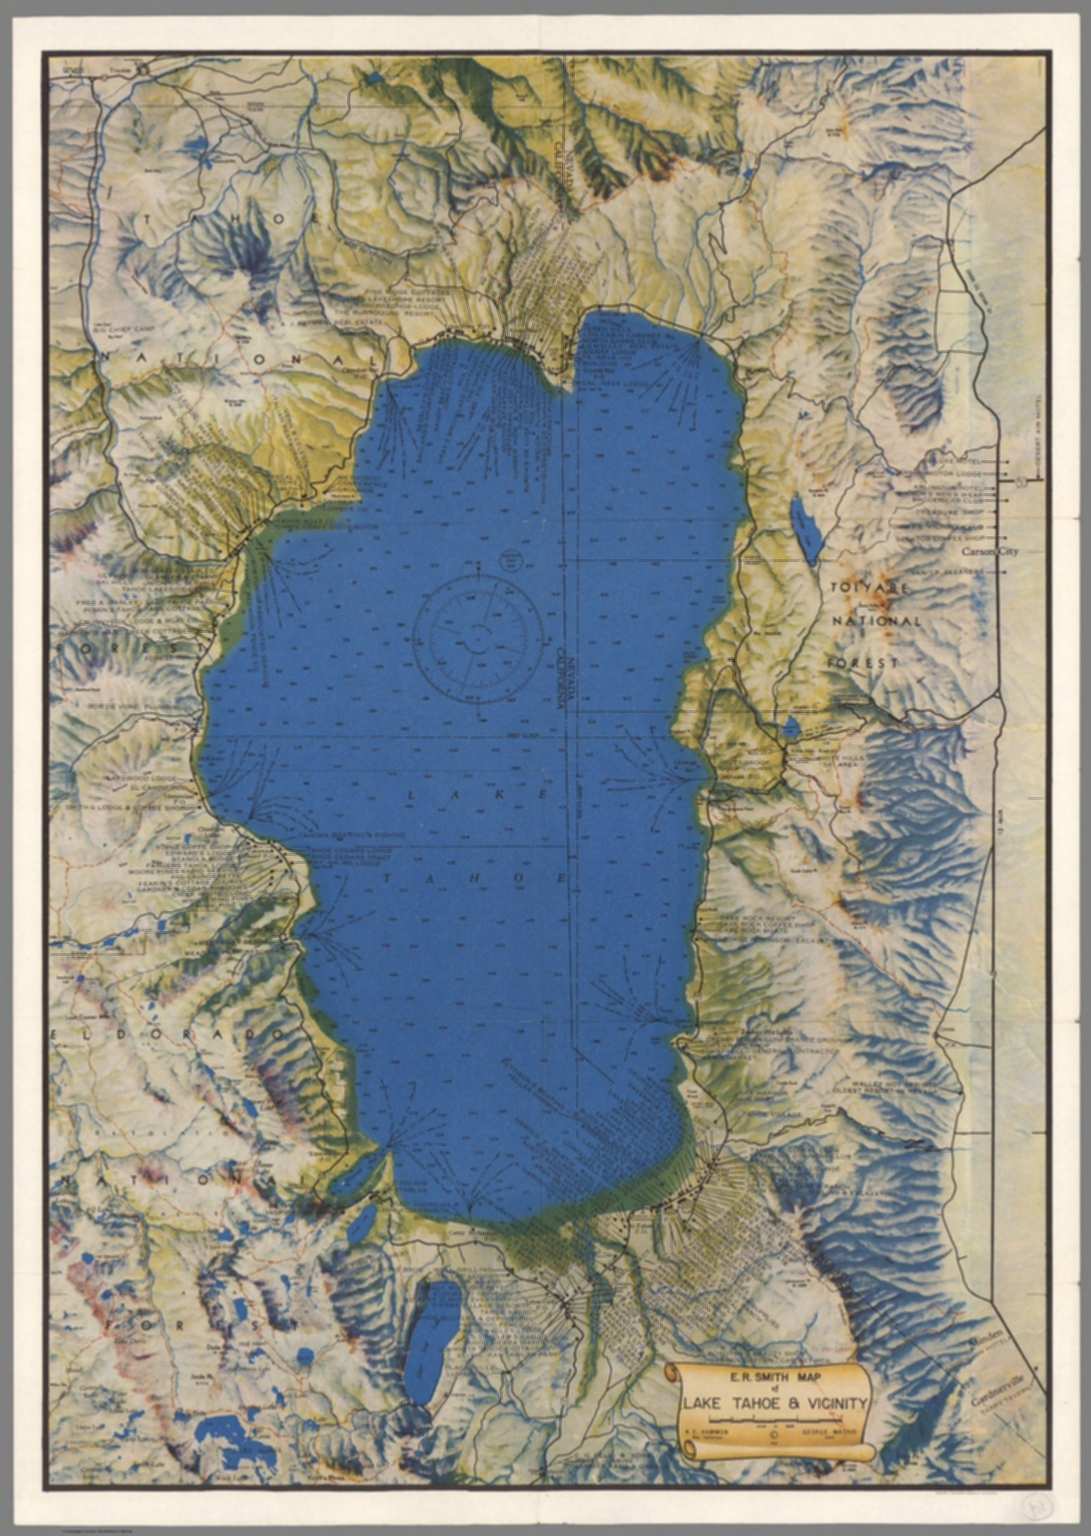 E.R. Smith map of Lake Tahoe & vicinity - David Rumsey Historical ...